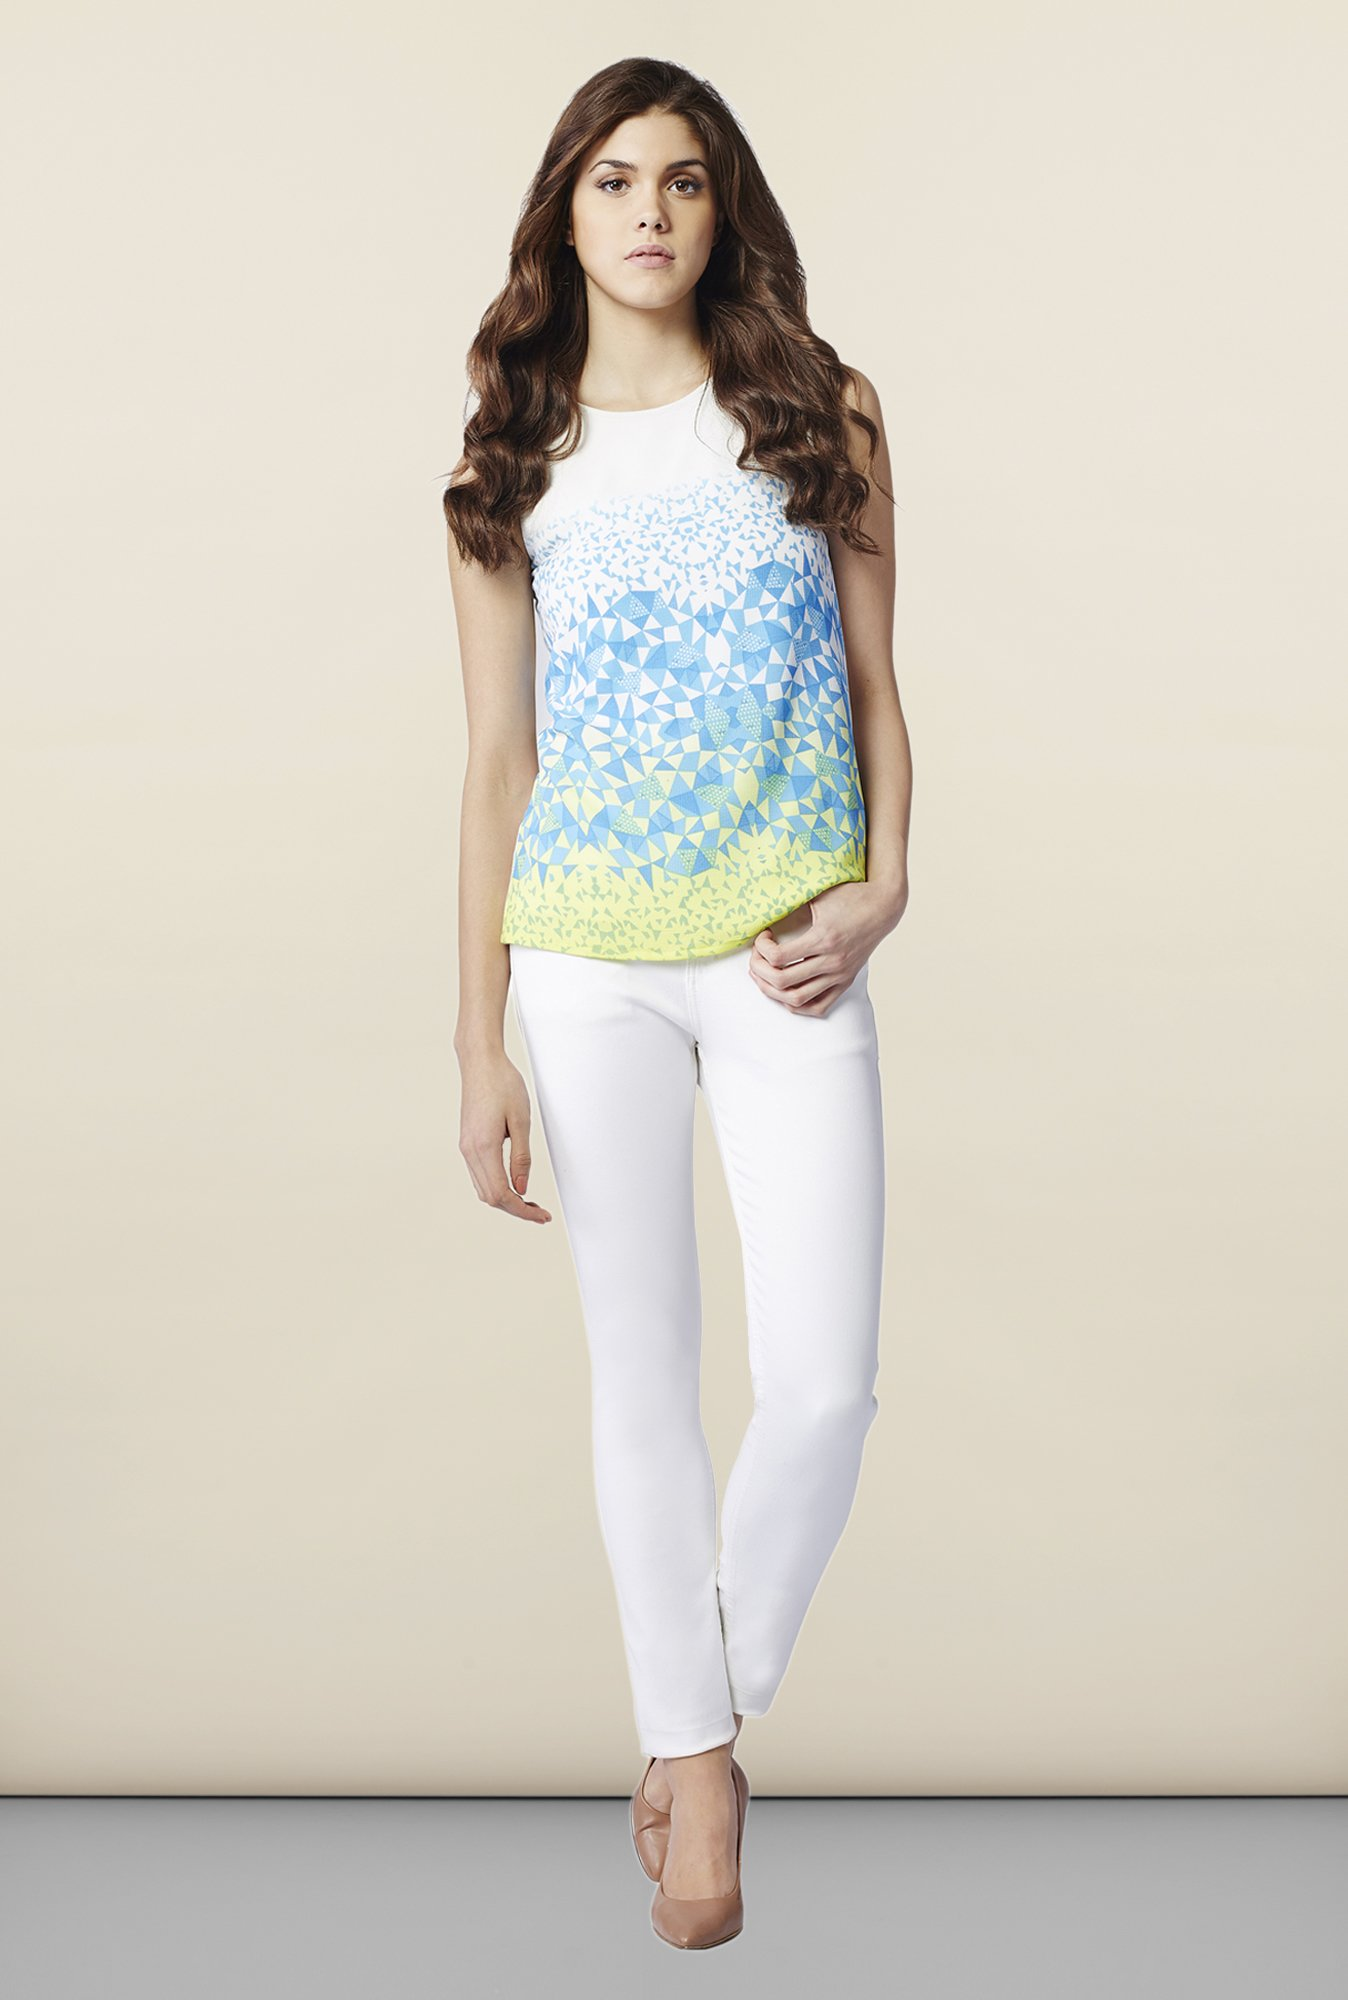 AND White & Blue Printed Regular Fit Top